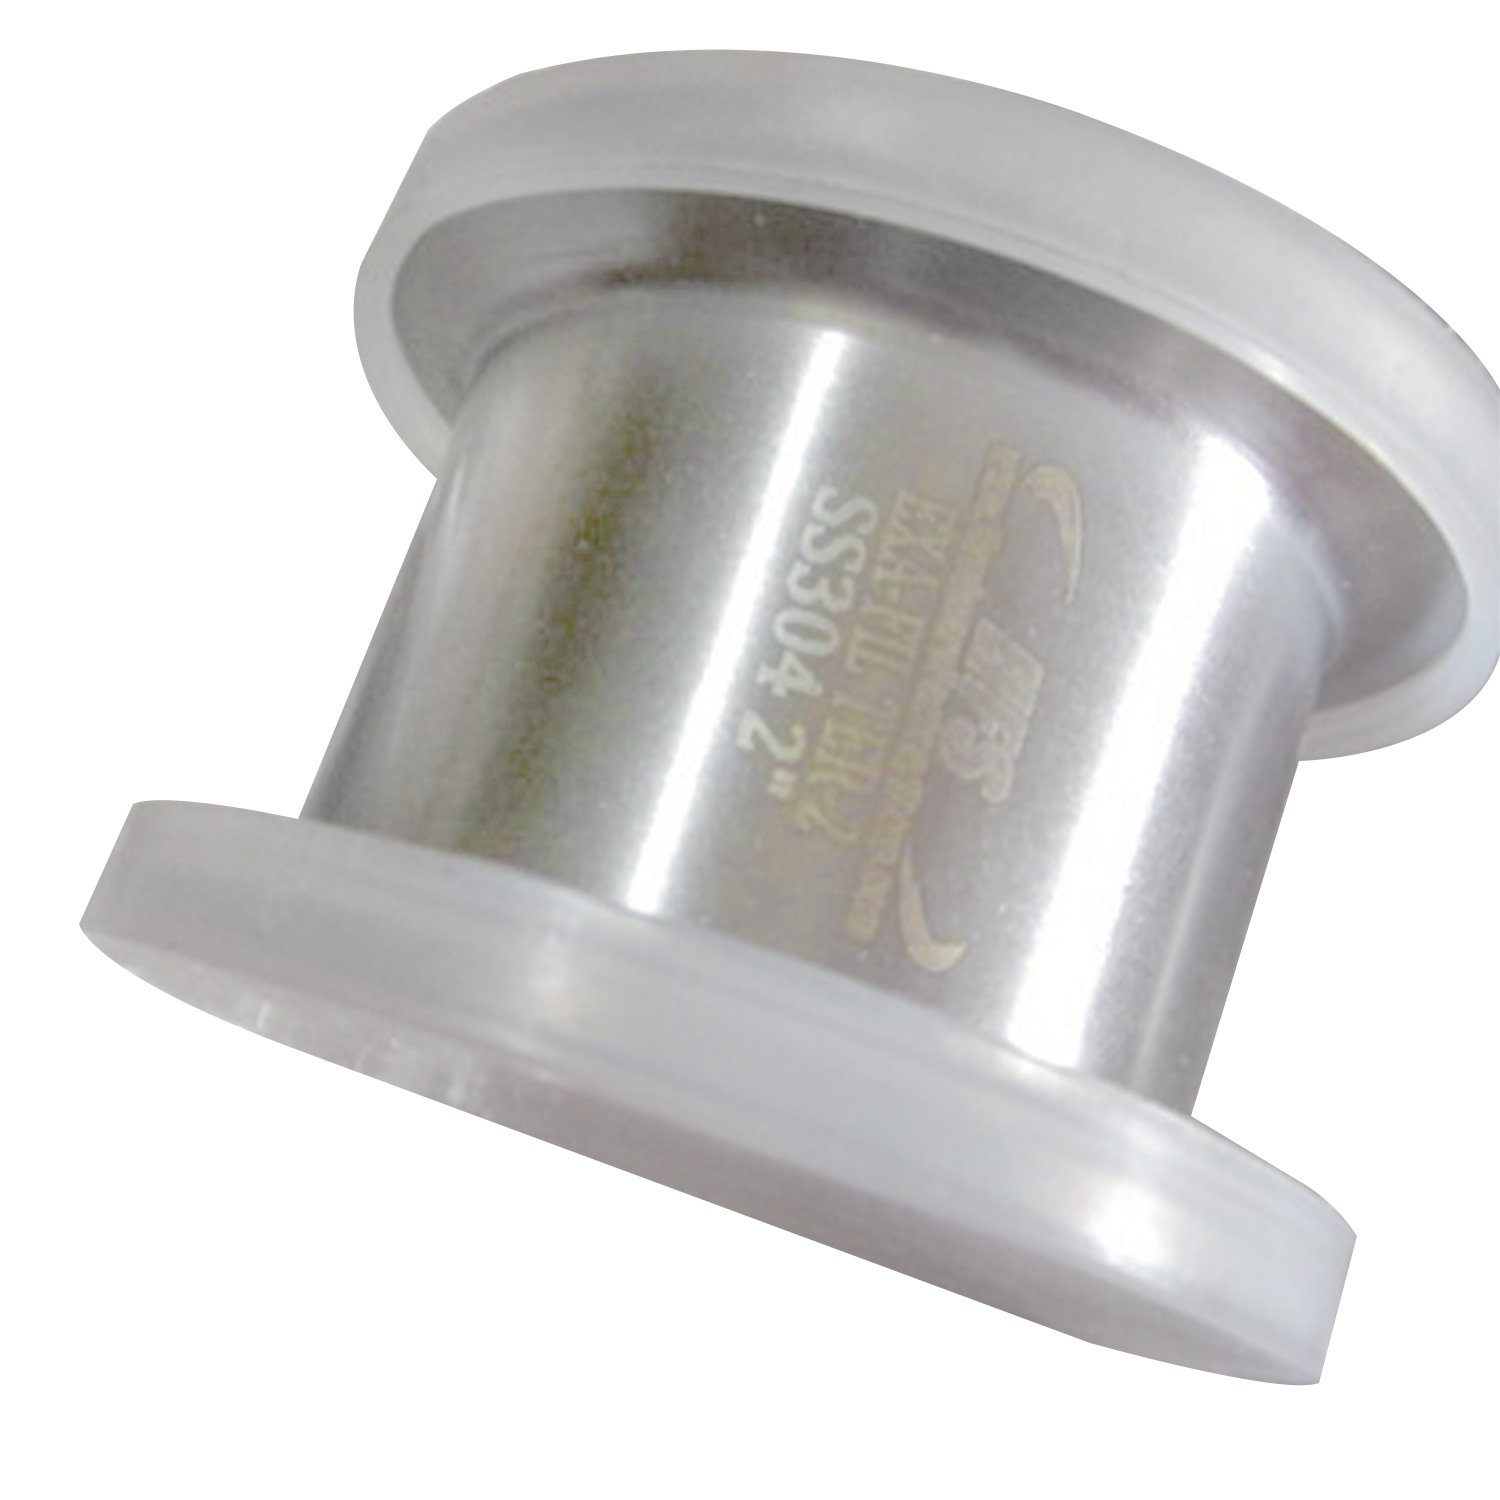 HFS R 1.5 Stainless Sanitary Filter Plate fits Tri-Clamp Ferrule Flange with 6mm holes